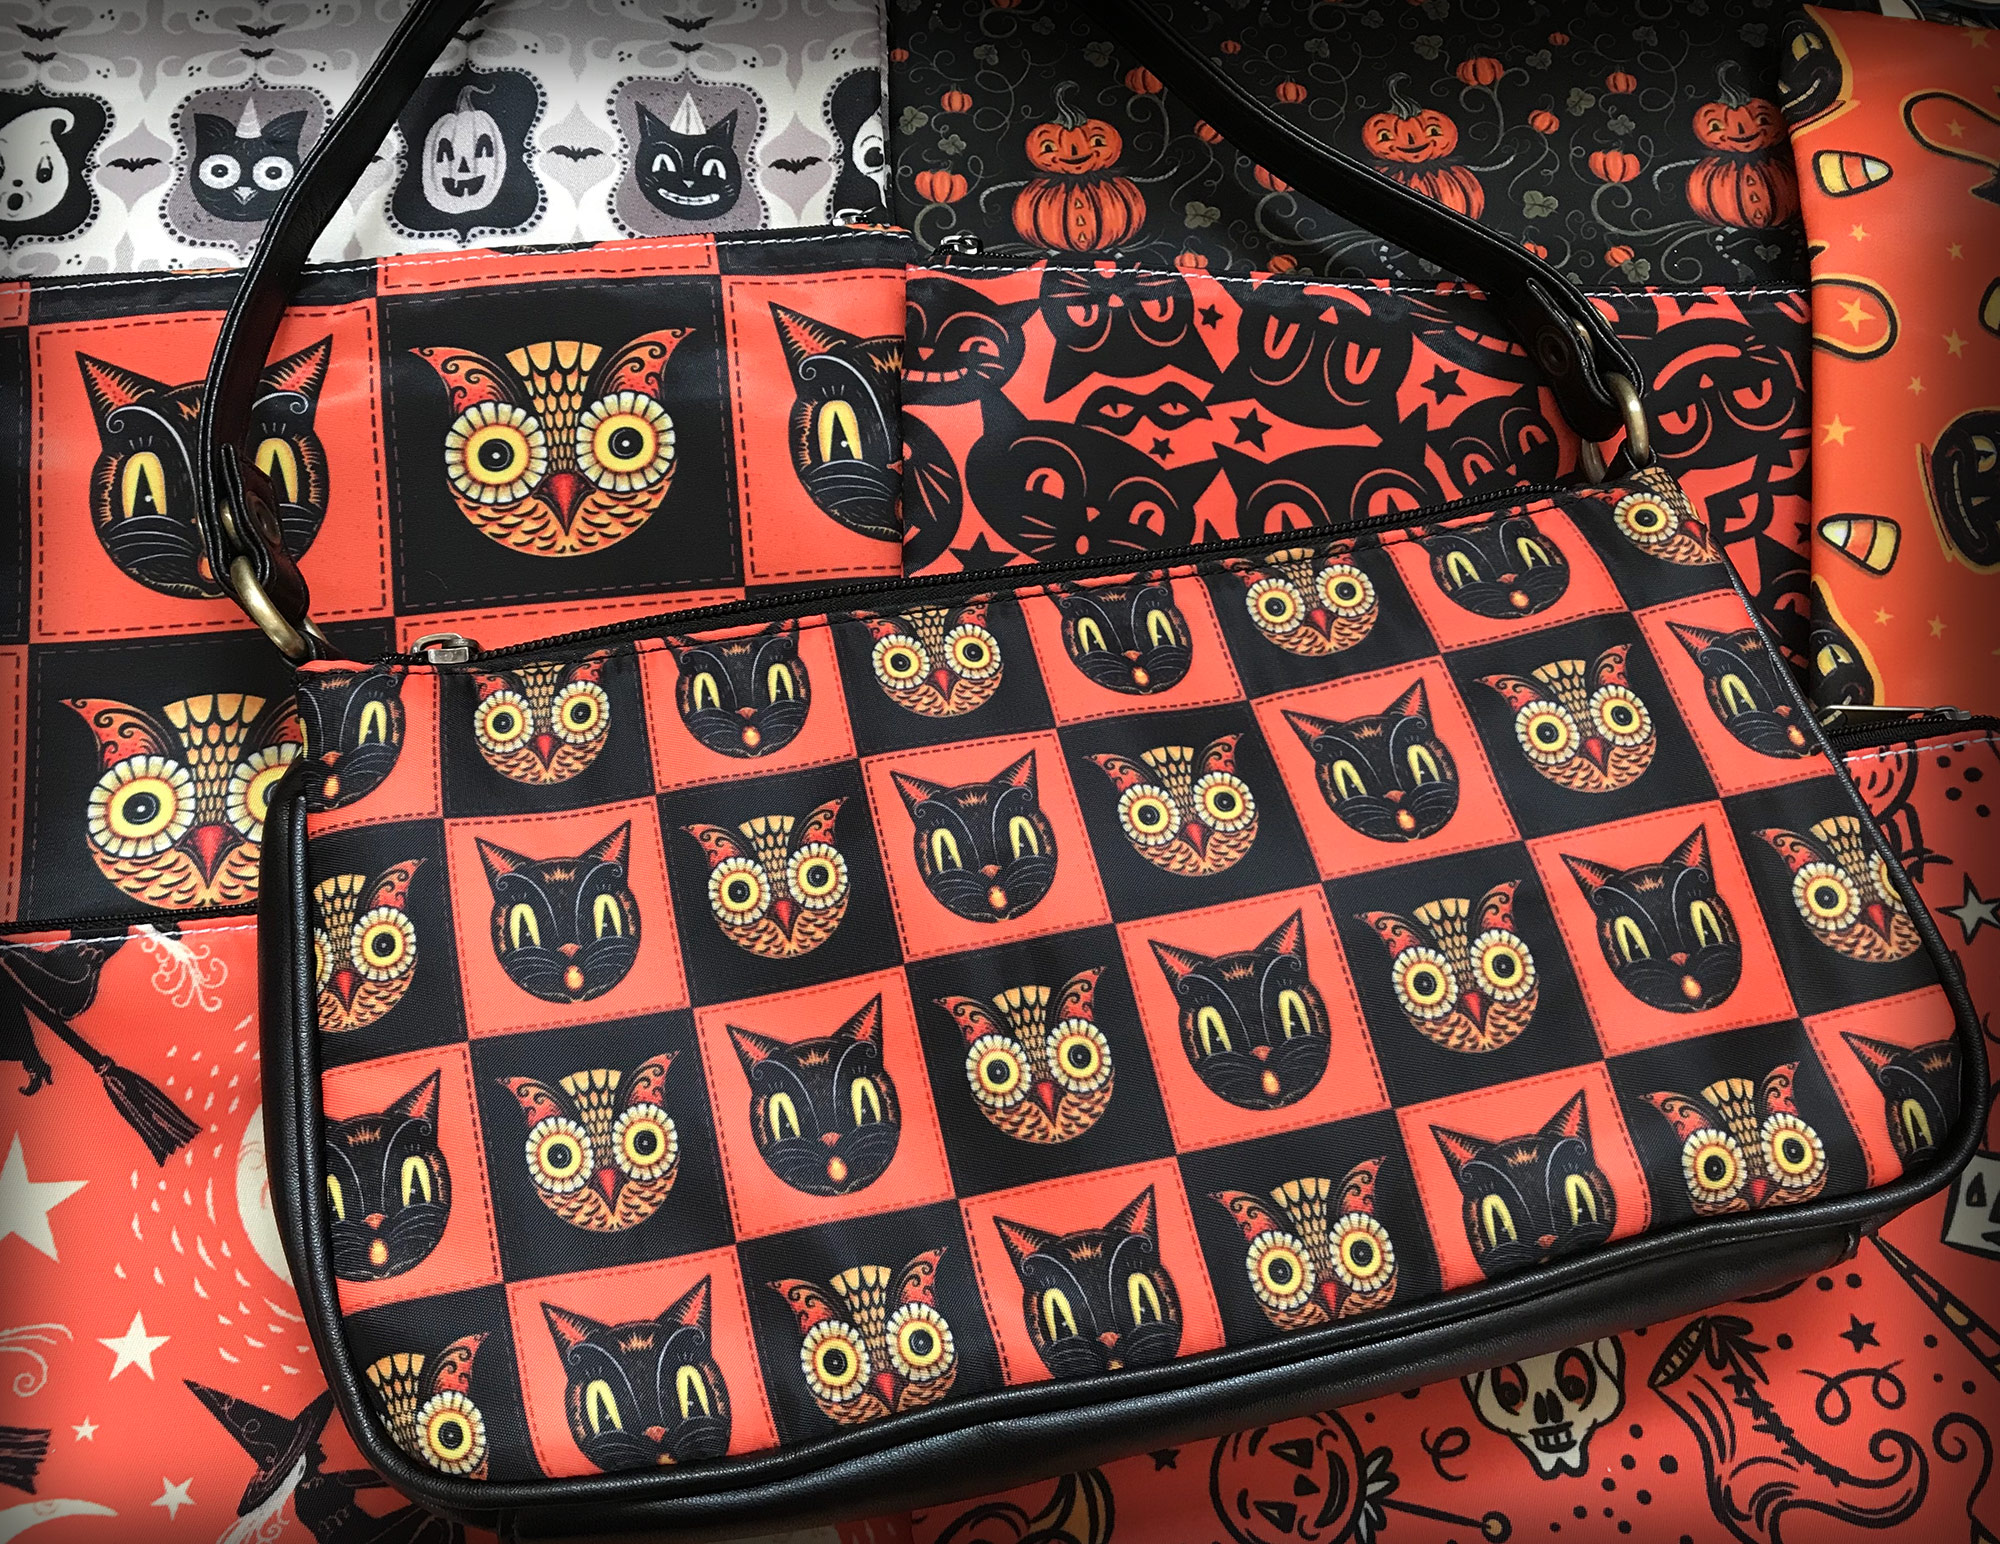 Enjoy Johanna's classic Black Cat & Owl checkerboard design on a clutch with many more spooktacular designs to choose from!